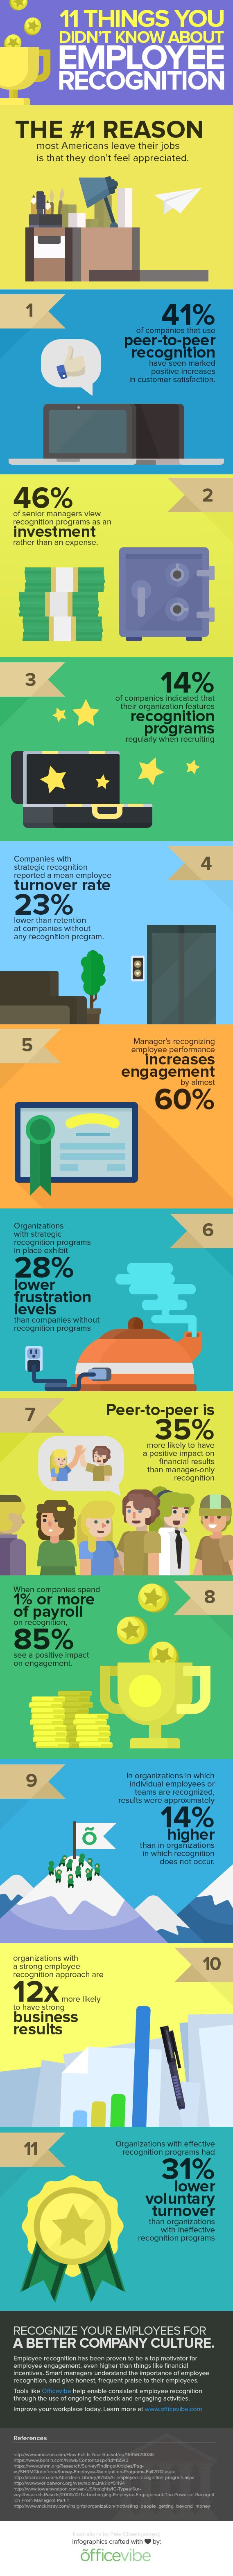 Did you know the #1 reason most American employees quit their jobs is they don't feel appreciated? Find out 10 other things you didn't know about employee recognition in this cool infographic.